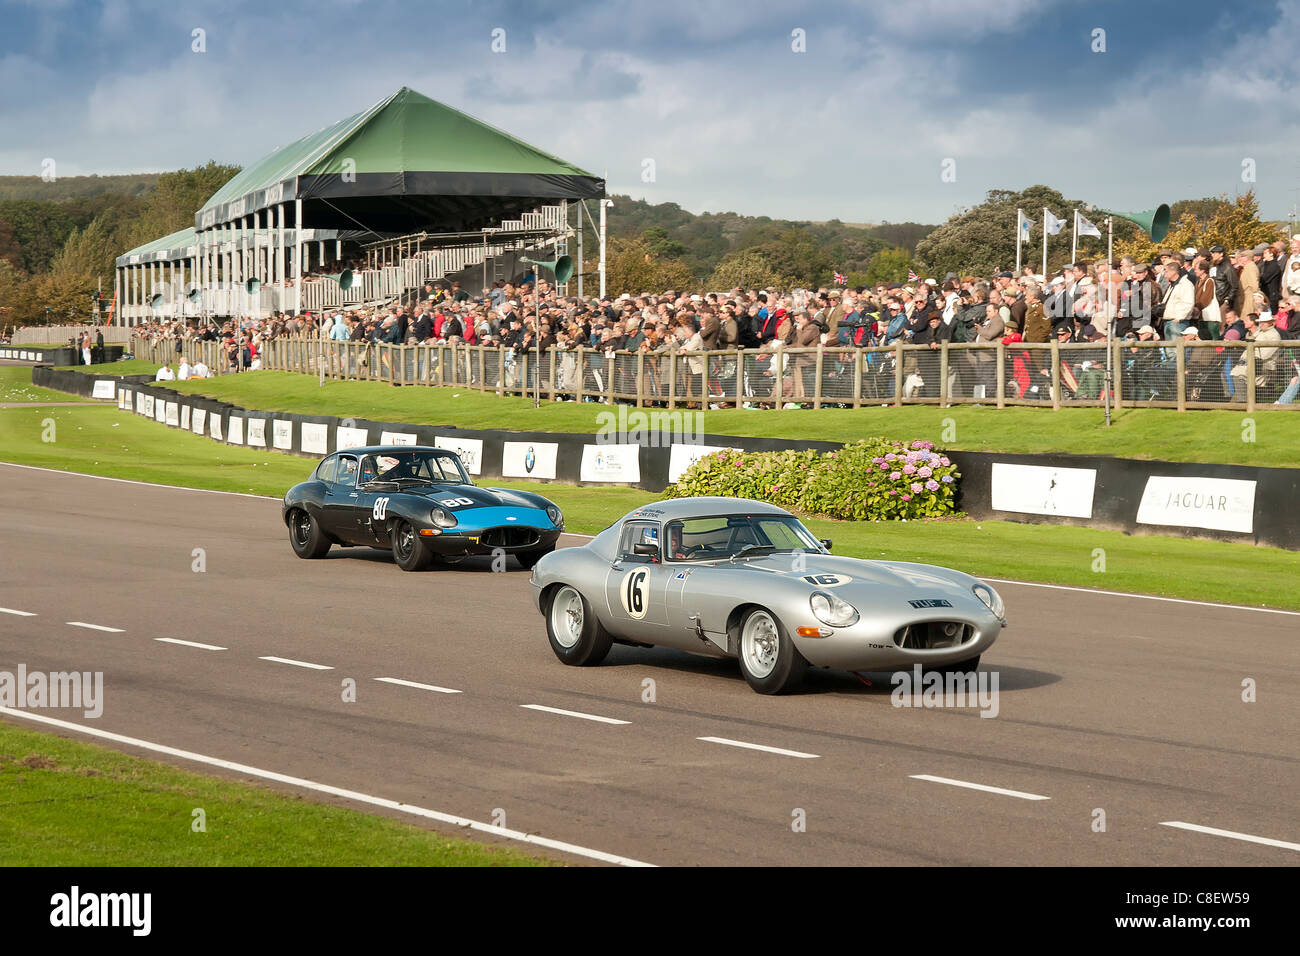 E geben Sie Jaguar Racing in Goodwood Stockbild